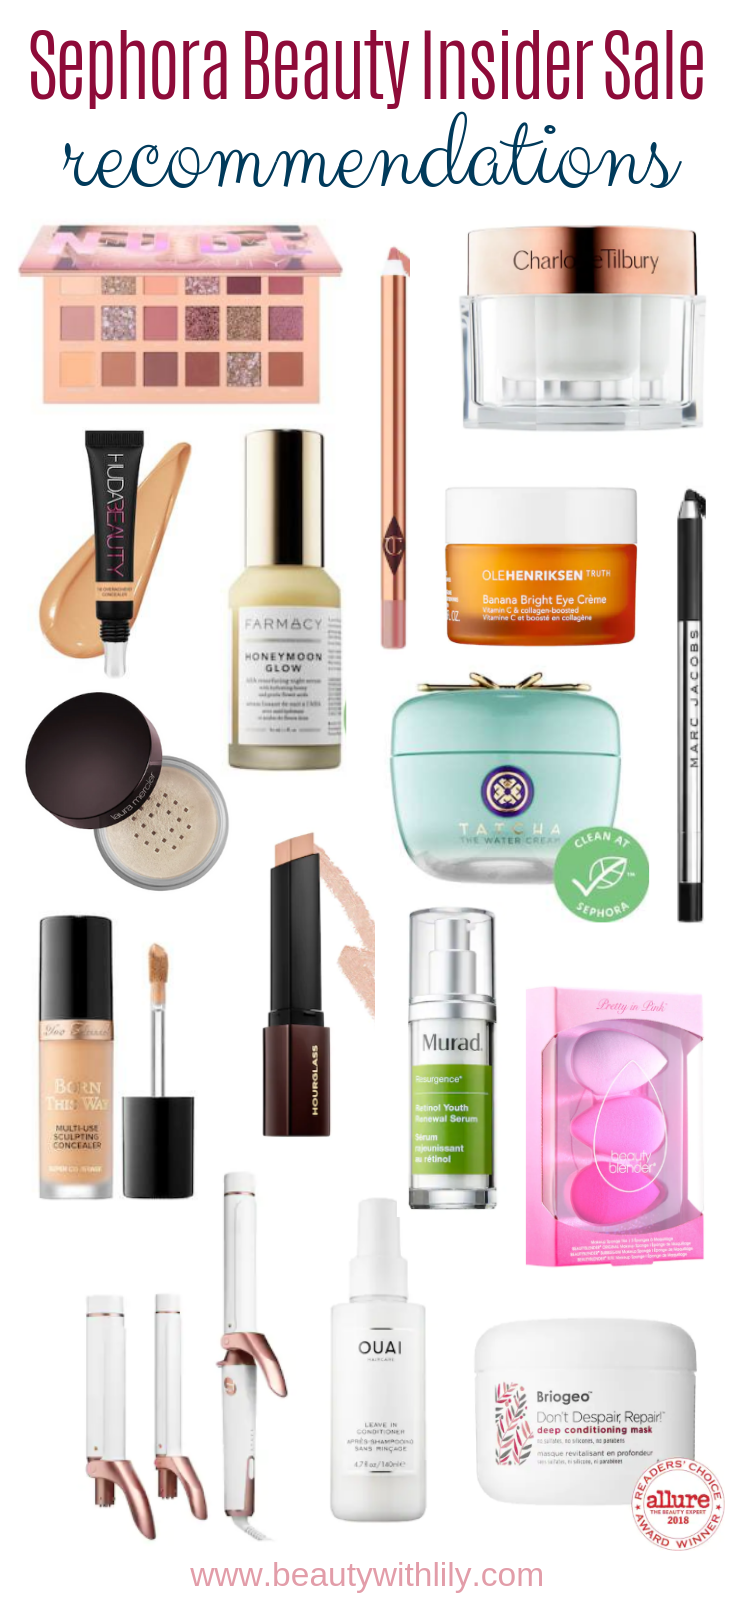 Sephora Beauty Insider Event // Sephora VIB Sale // Beauty Recommendations // Makeup To Try // High-End Beauty // Skincare Recommendations // Hair Tools   Beauty With Lily